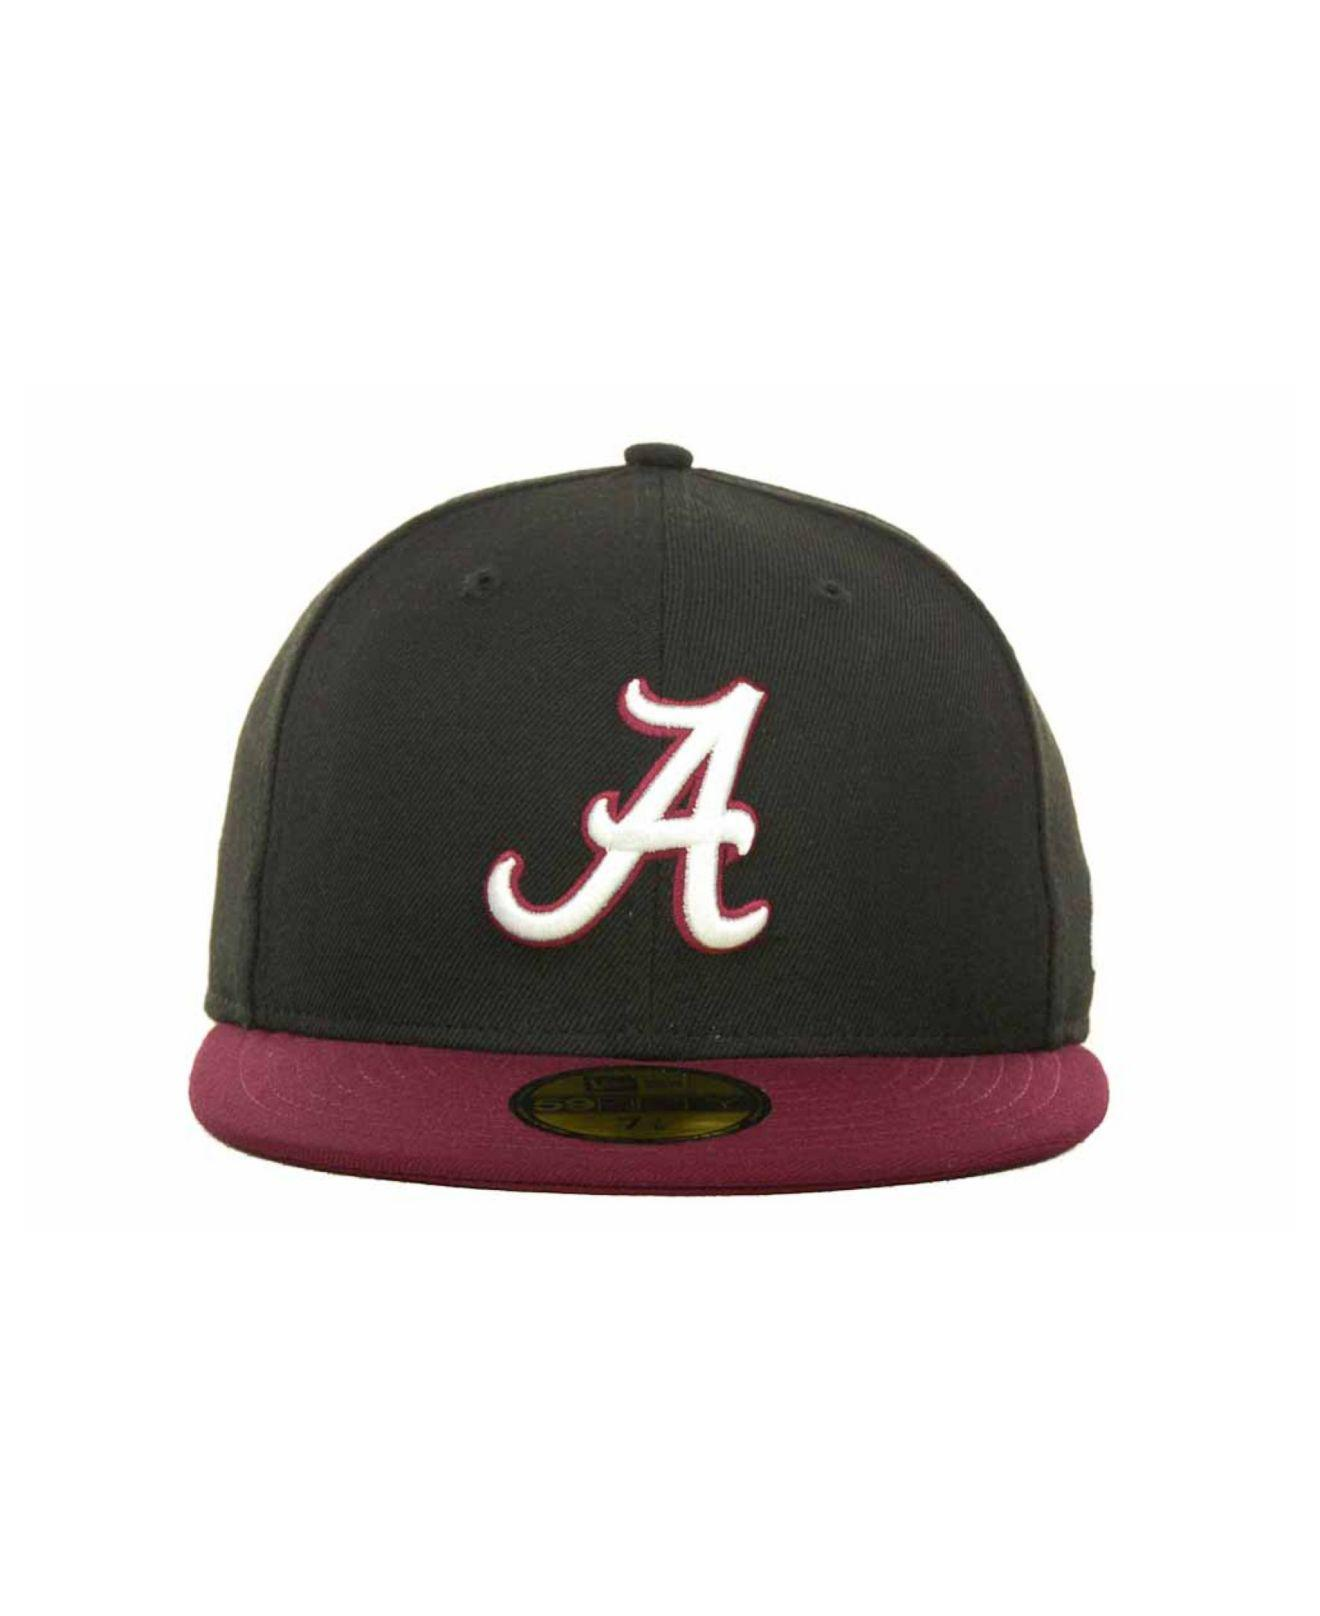 cheap for discount d4578 c9c22 Lyst - KTZ Alabama Crimson Tide 2 Tone 59fifty Cap in Black for Men